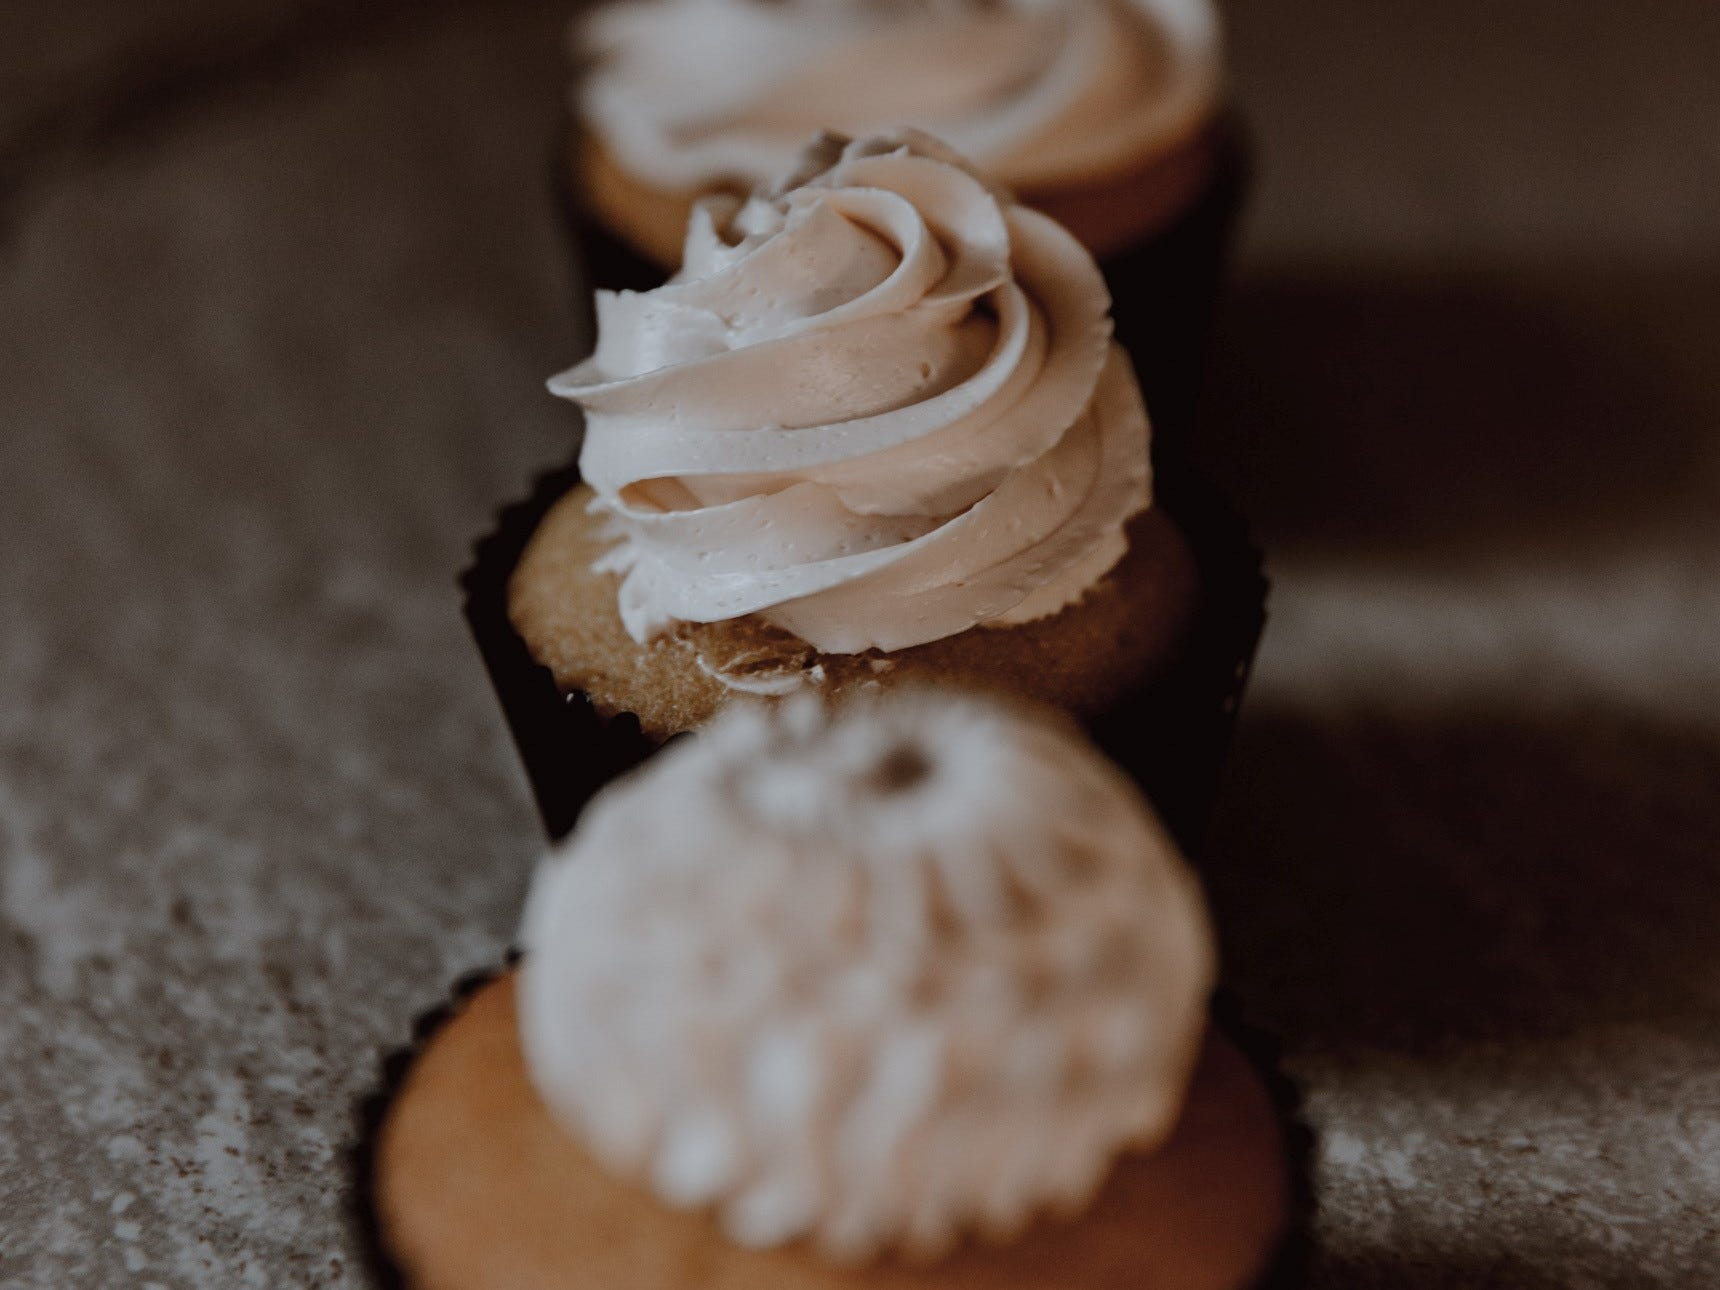 Examples of Eden Bakery's cupcakes.